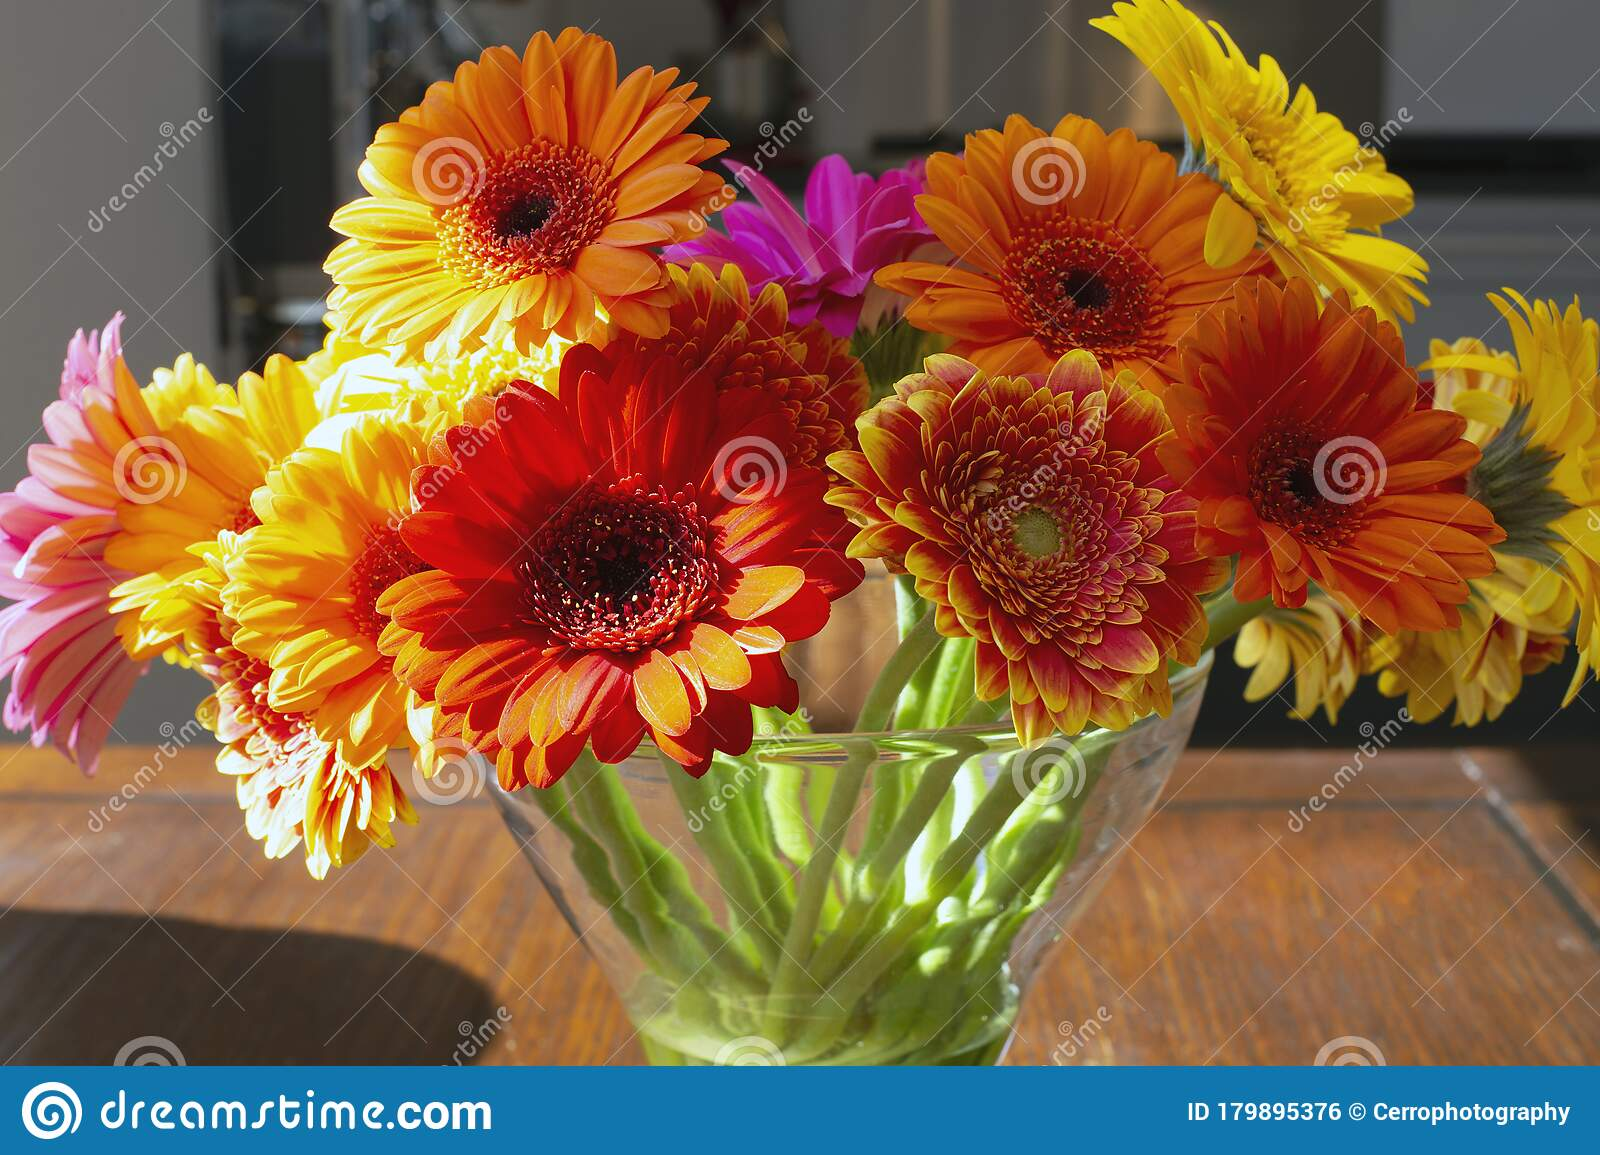 Colorful Gerber Daisies In A Glass Vase On A Wooden Table ...